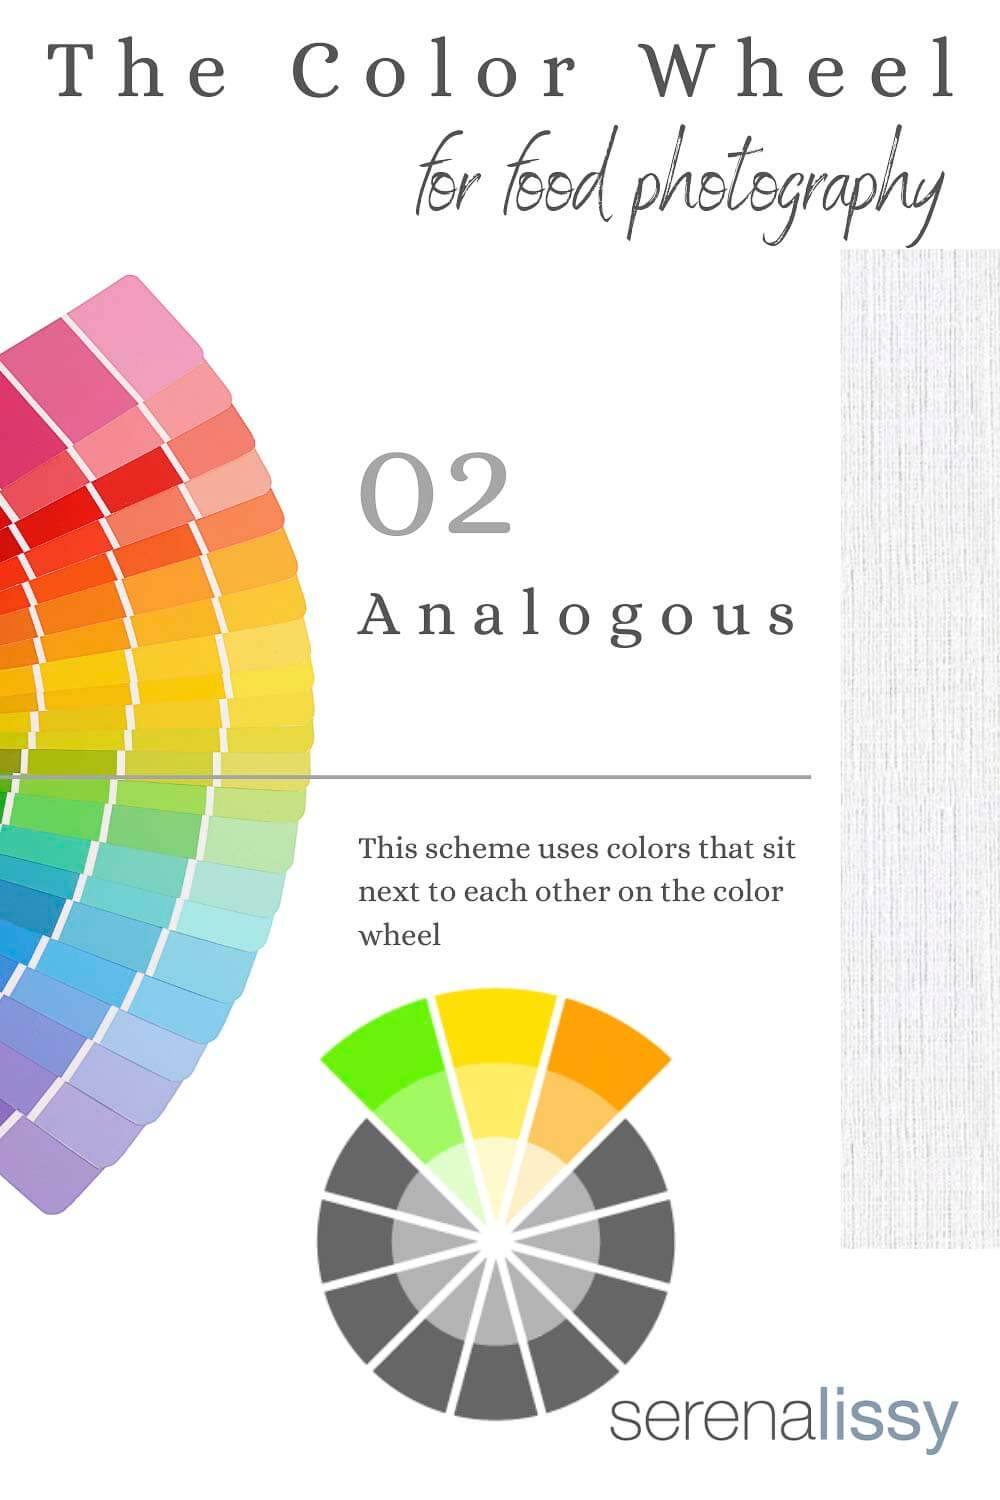 Analogous Example of Color Wheel